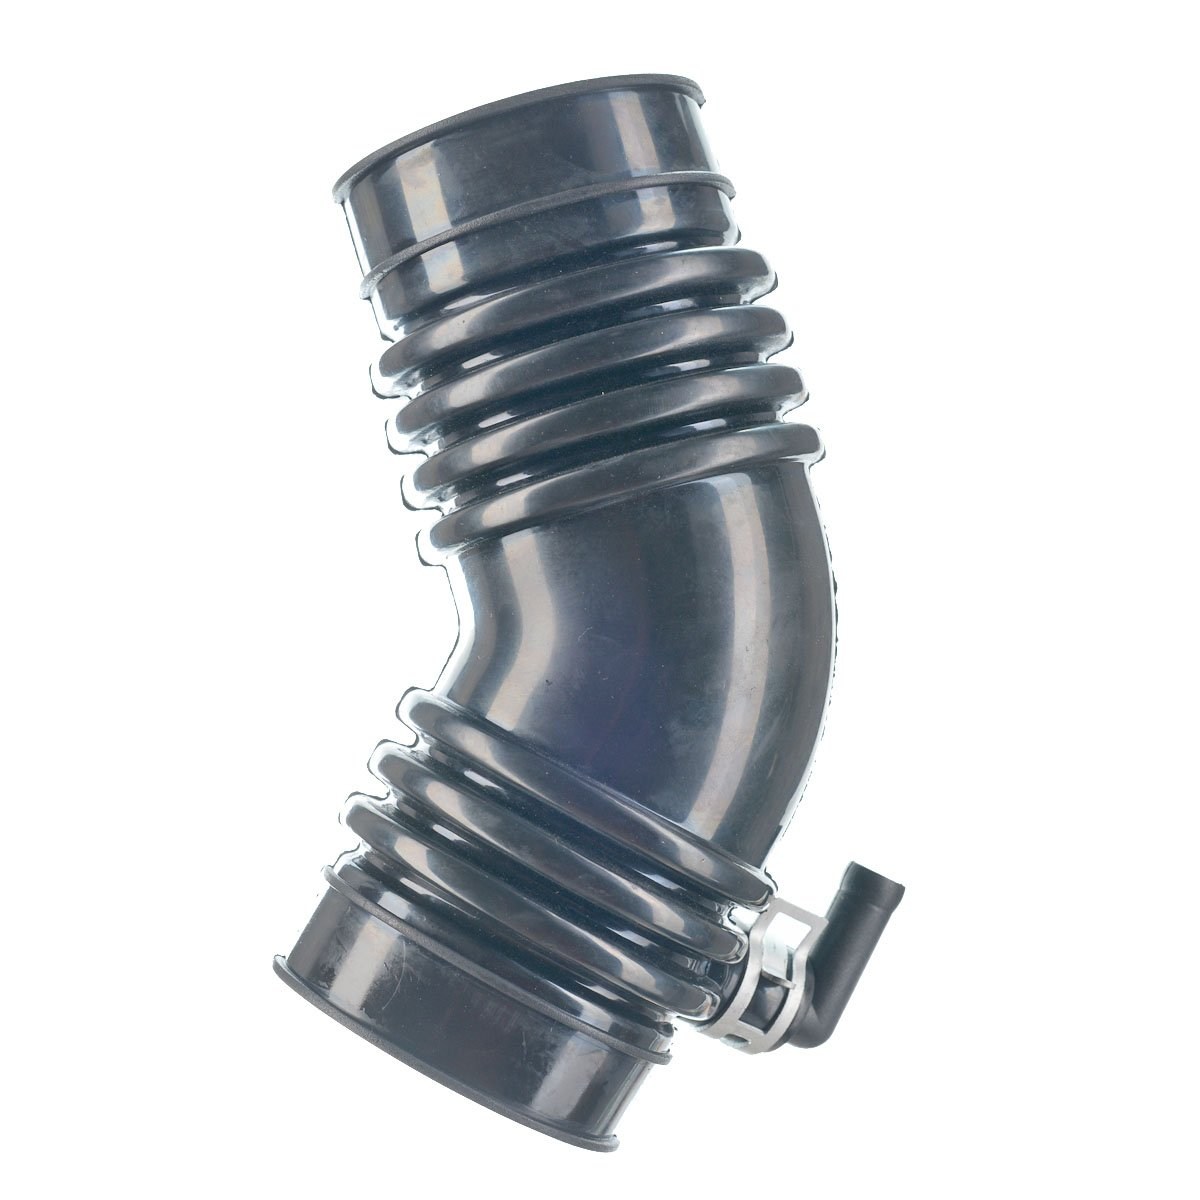 A-Premium Engine Air Cleaner Intake Hose Tube for Toyota Pickup 1989-1995 4Runner 3.0L